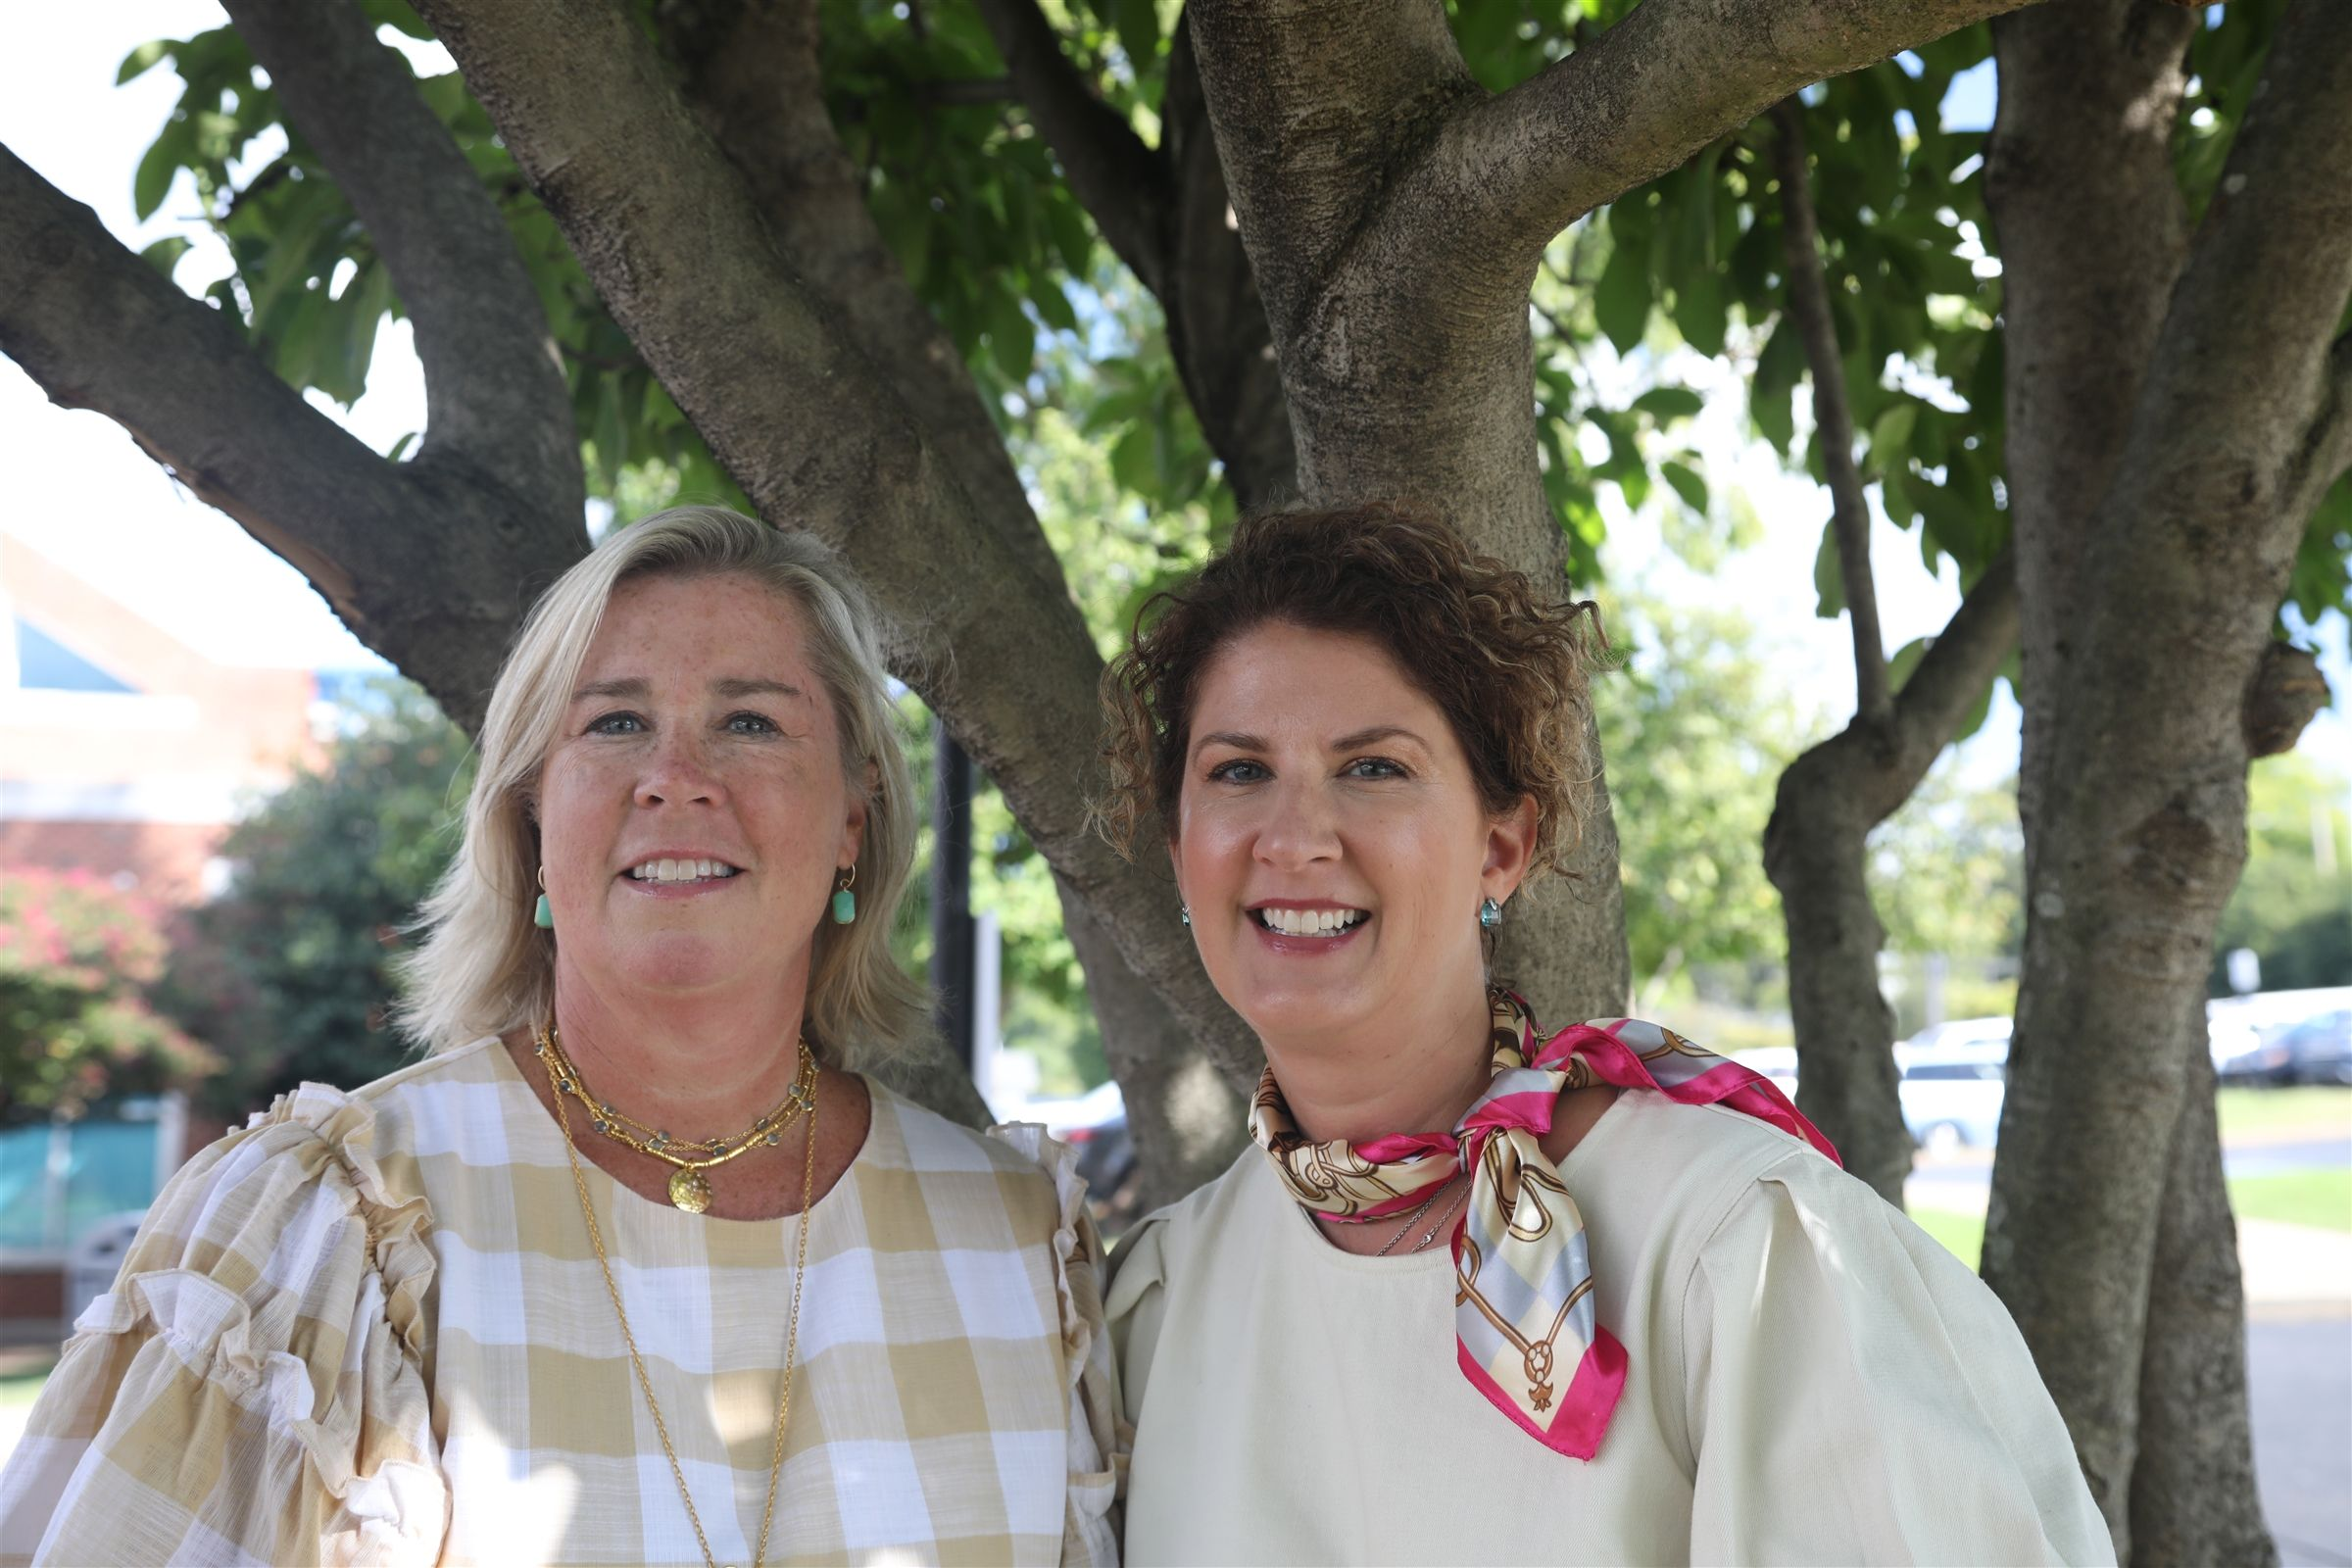 This year's Bruiser Bee co-chairs are Caroline Caulkins Bentley '83 and Jenny Johnston P '23.